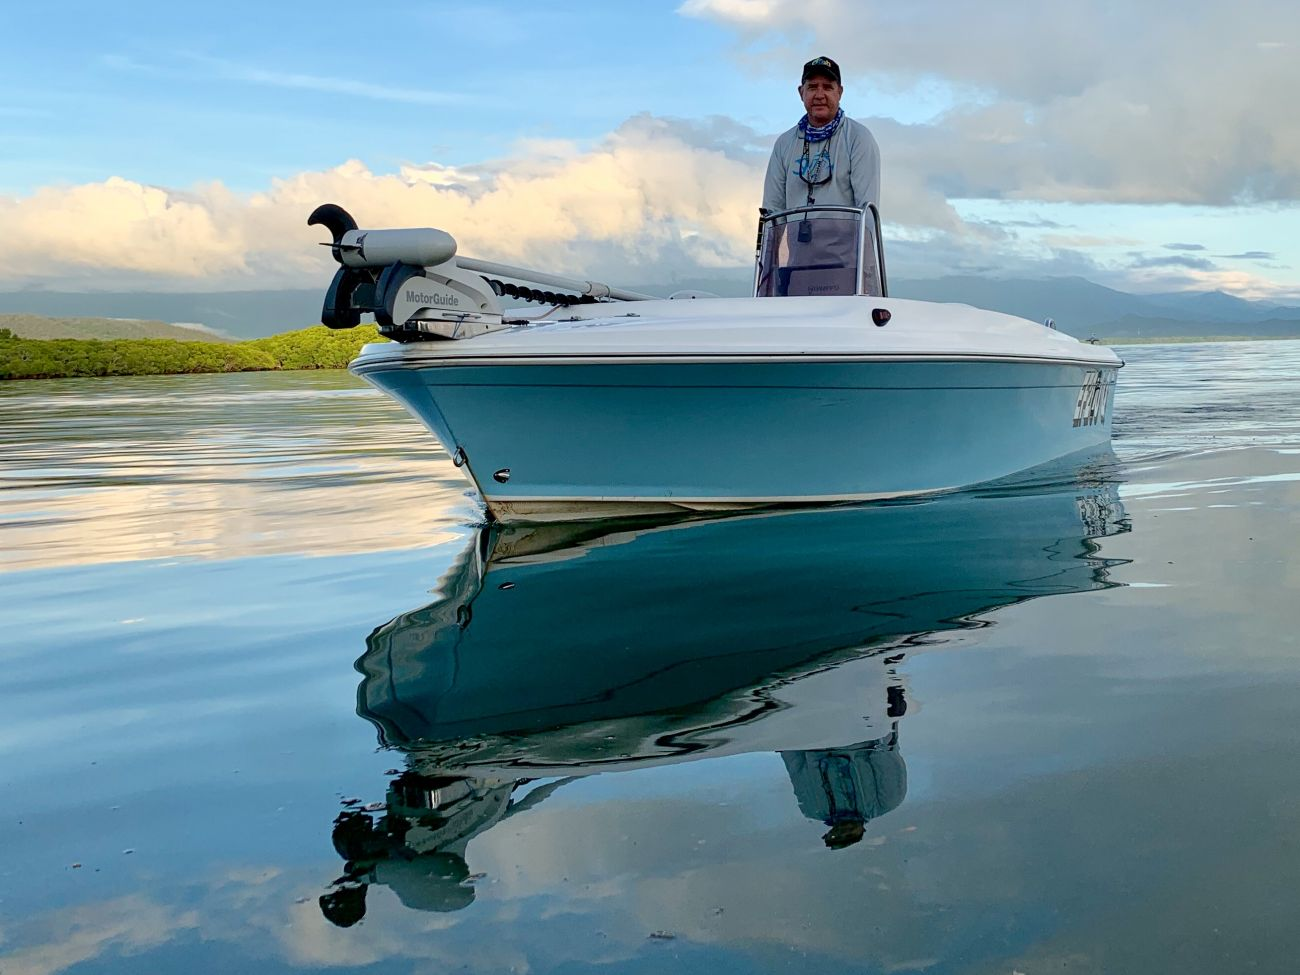 Recreational fisher in boat - image credit GBRMPA - Phil Laycock